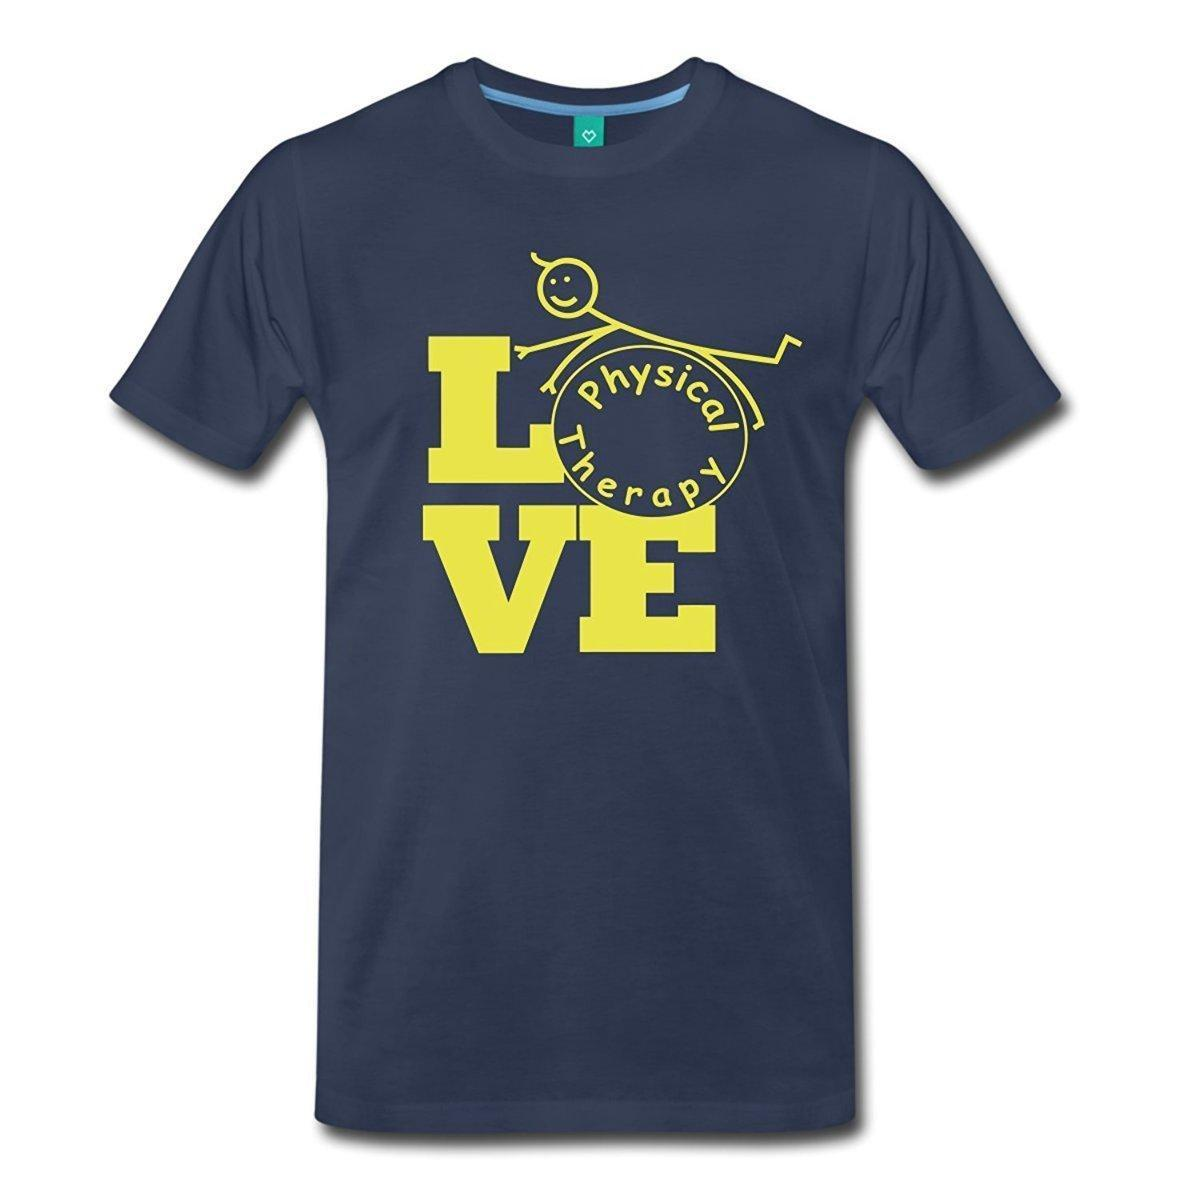 bc7164dd Random T Shirts Short Sleeve Printing Love Physical Therapy Physiotherapy  Crew Neck Shirt For Men Moto Shirts Tee T Shirts From Jie65, $14.67|  DHgate.Com